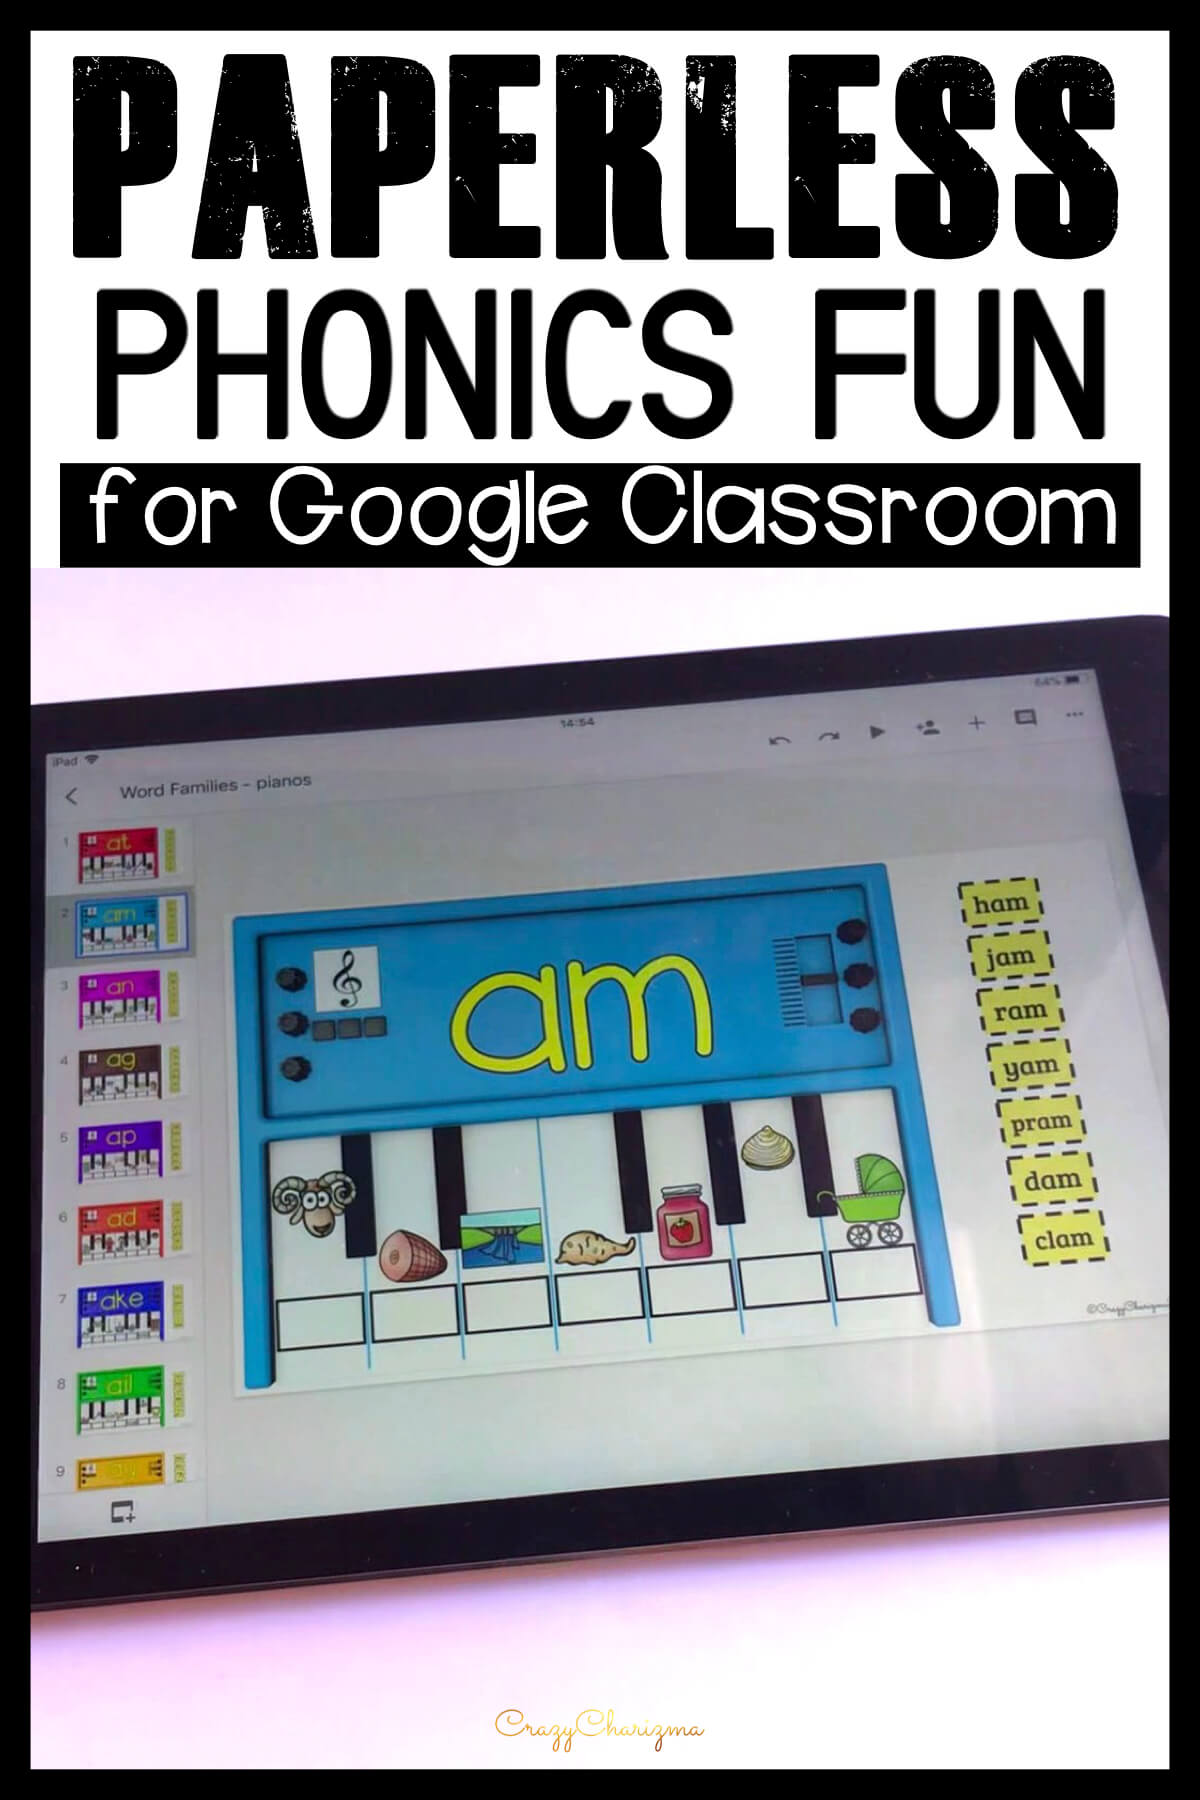 Google Classroom Activities for Kindergarten | Do you need to practice phonics on iPads, Chromebooks or smartboards? Use these activities for Google Classroom™. The games are perfect for 1:1 work, during your literacy block, daily 5, guided reading, spelling, RTI, or during literacy centers.